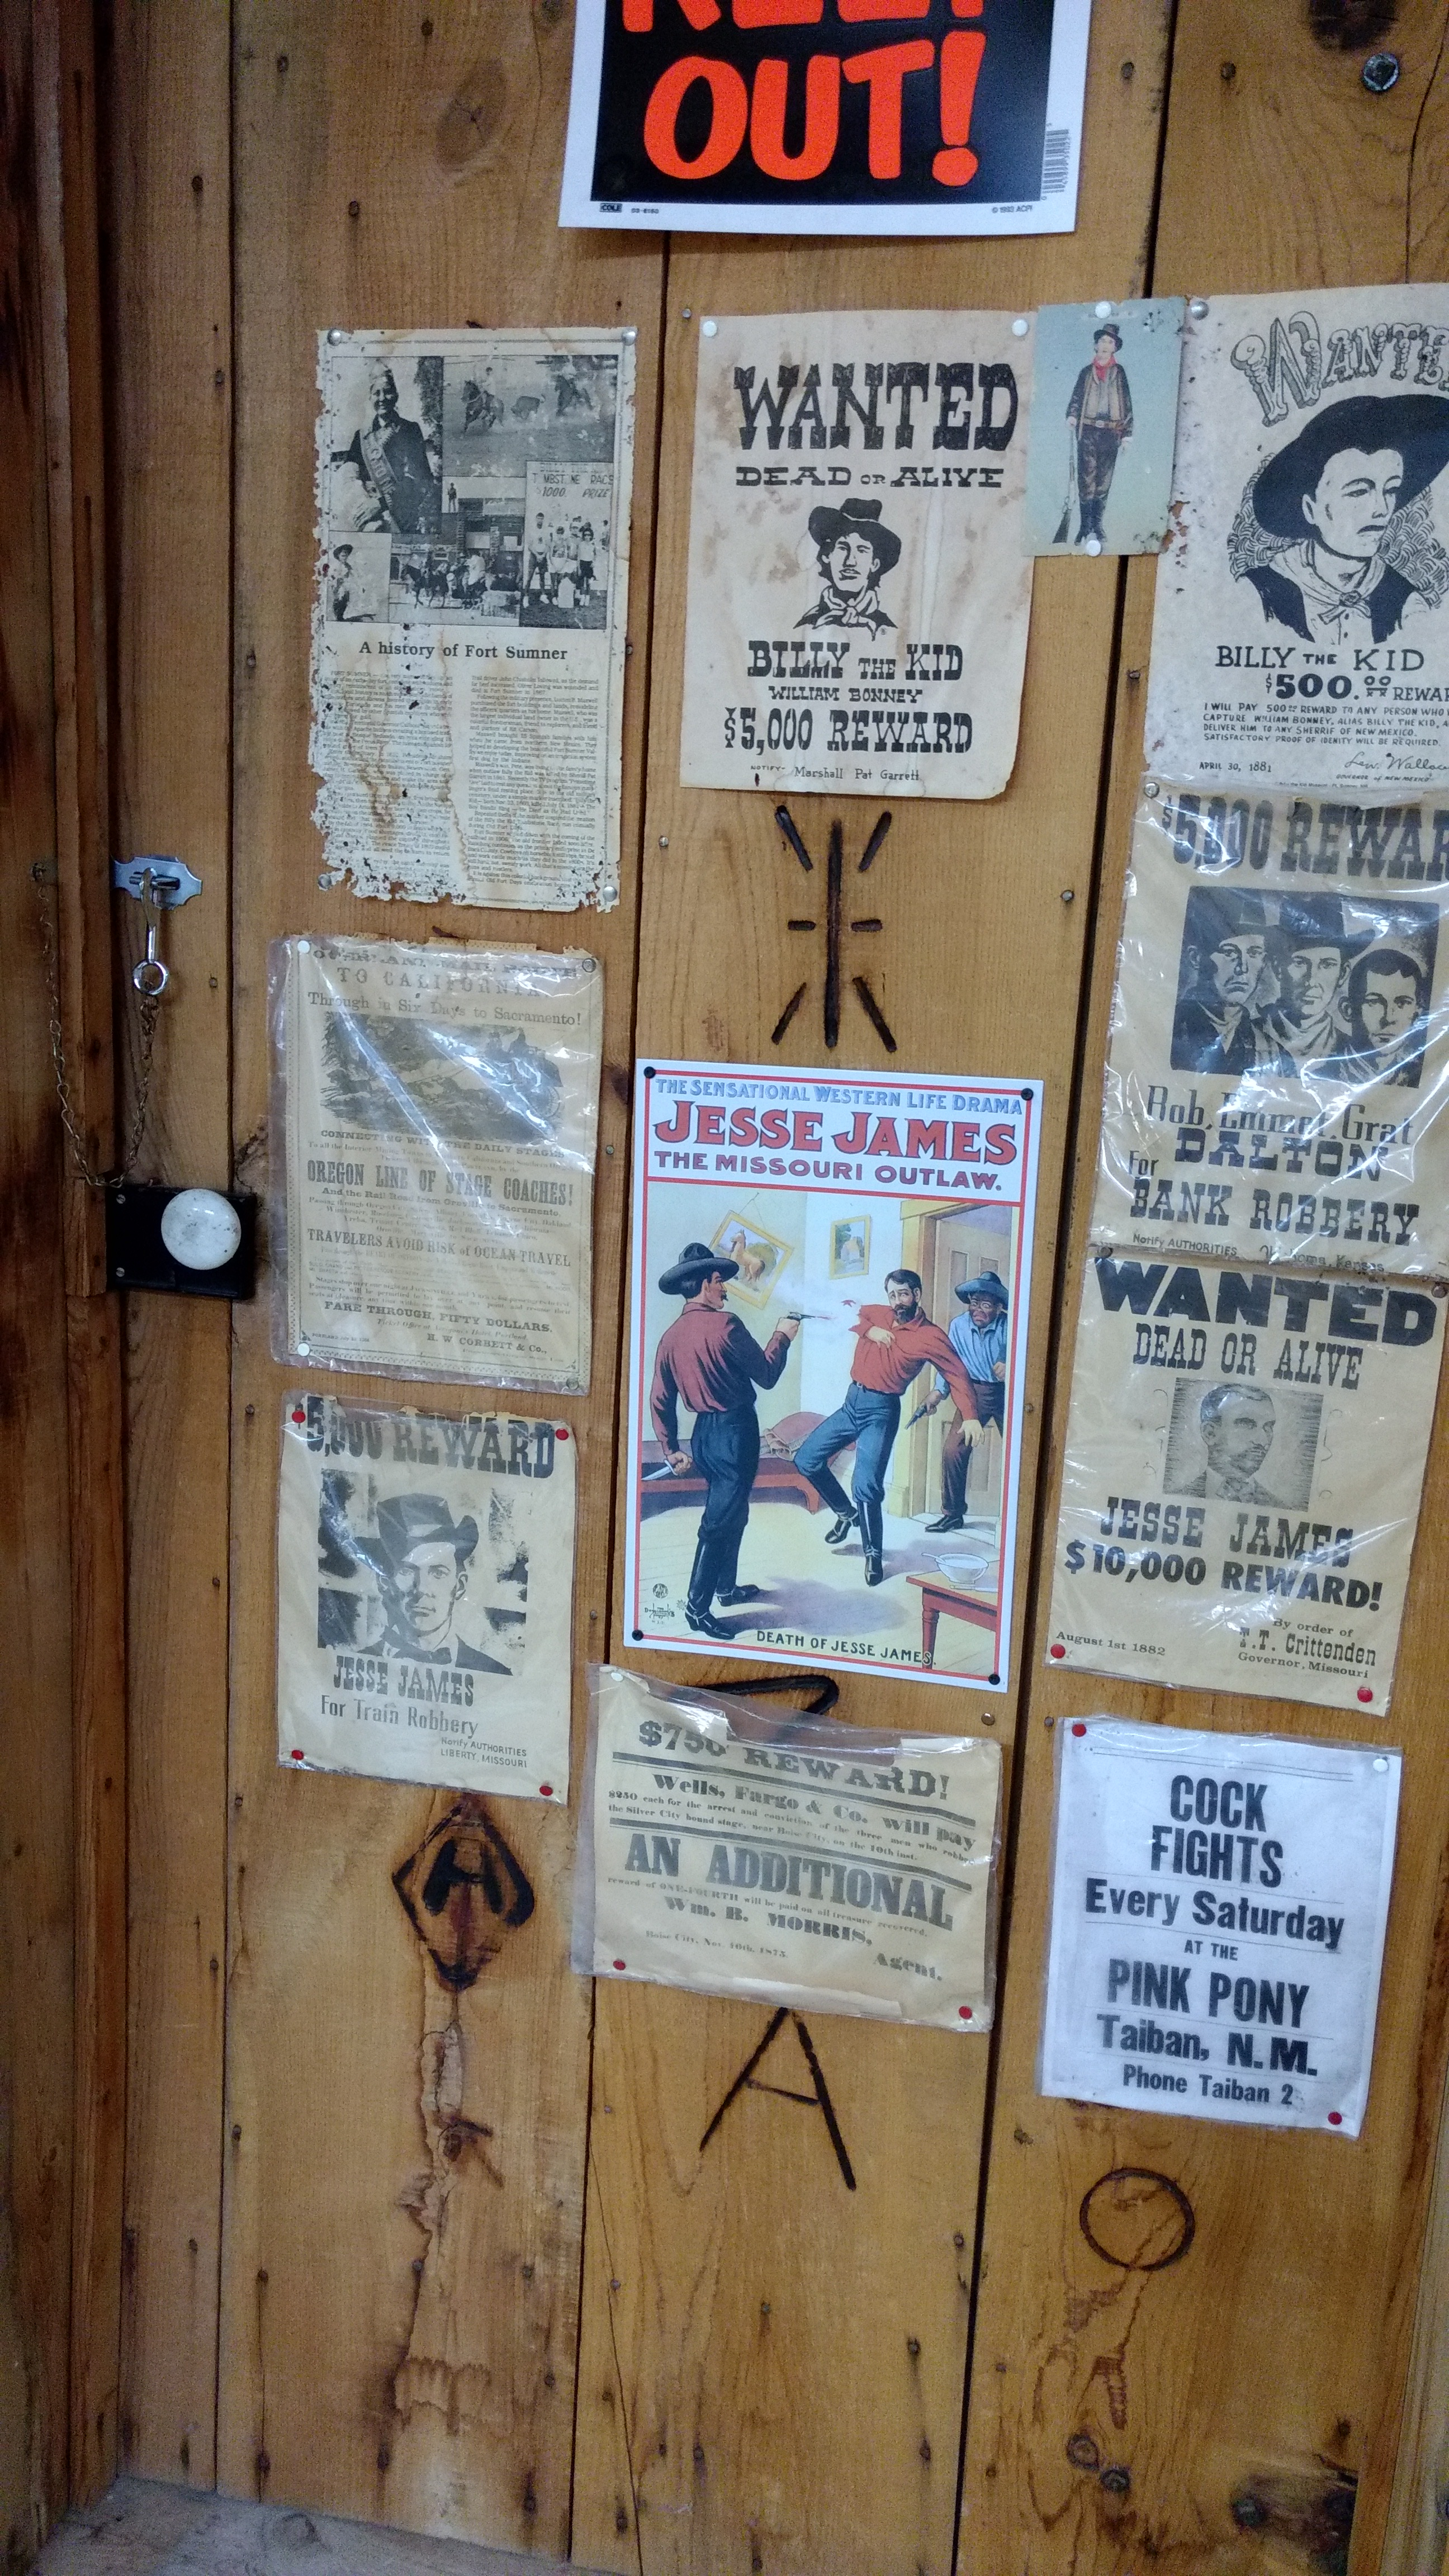 Wanted posters on notorious outlaws